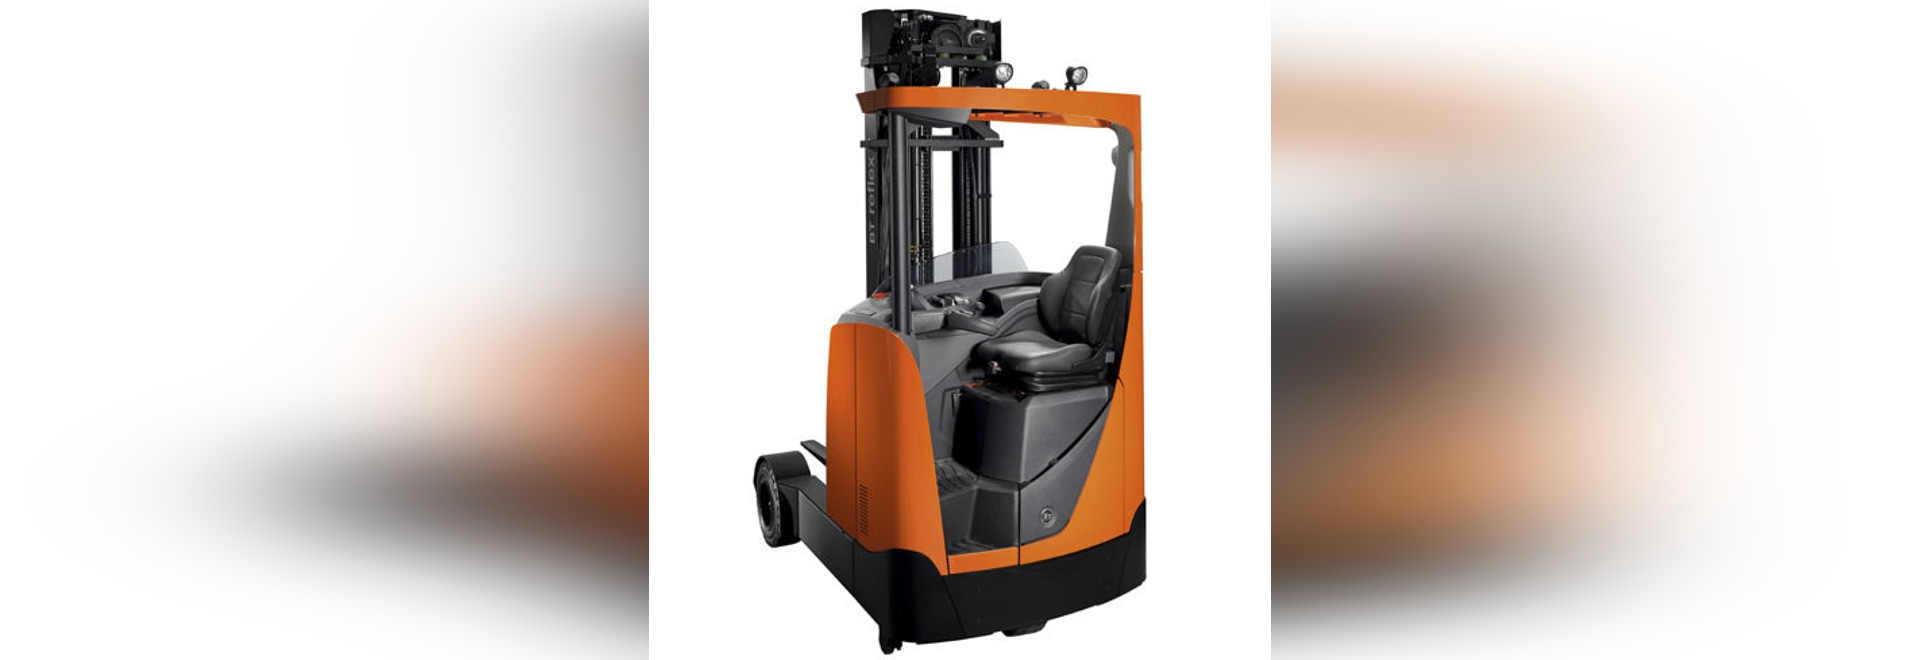 NEW: Side Facing Seated Position Reach Truck By TOYOTA Material Handling